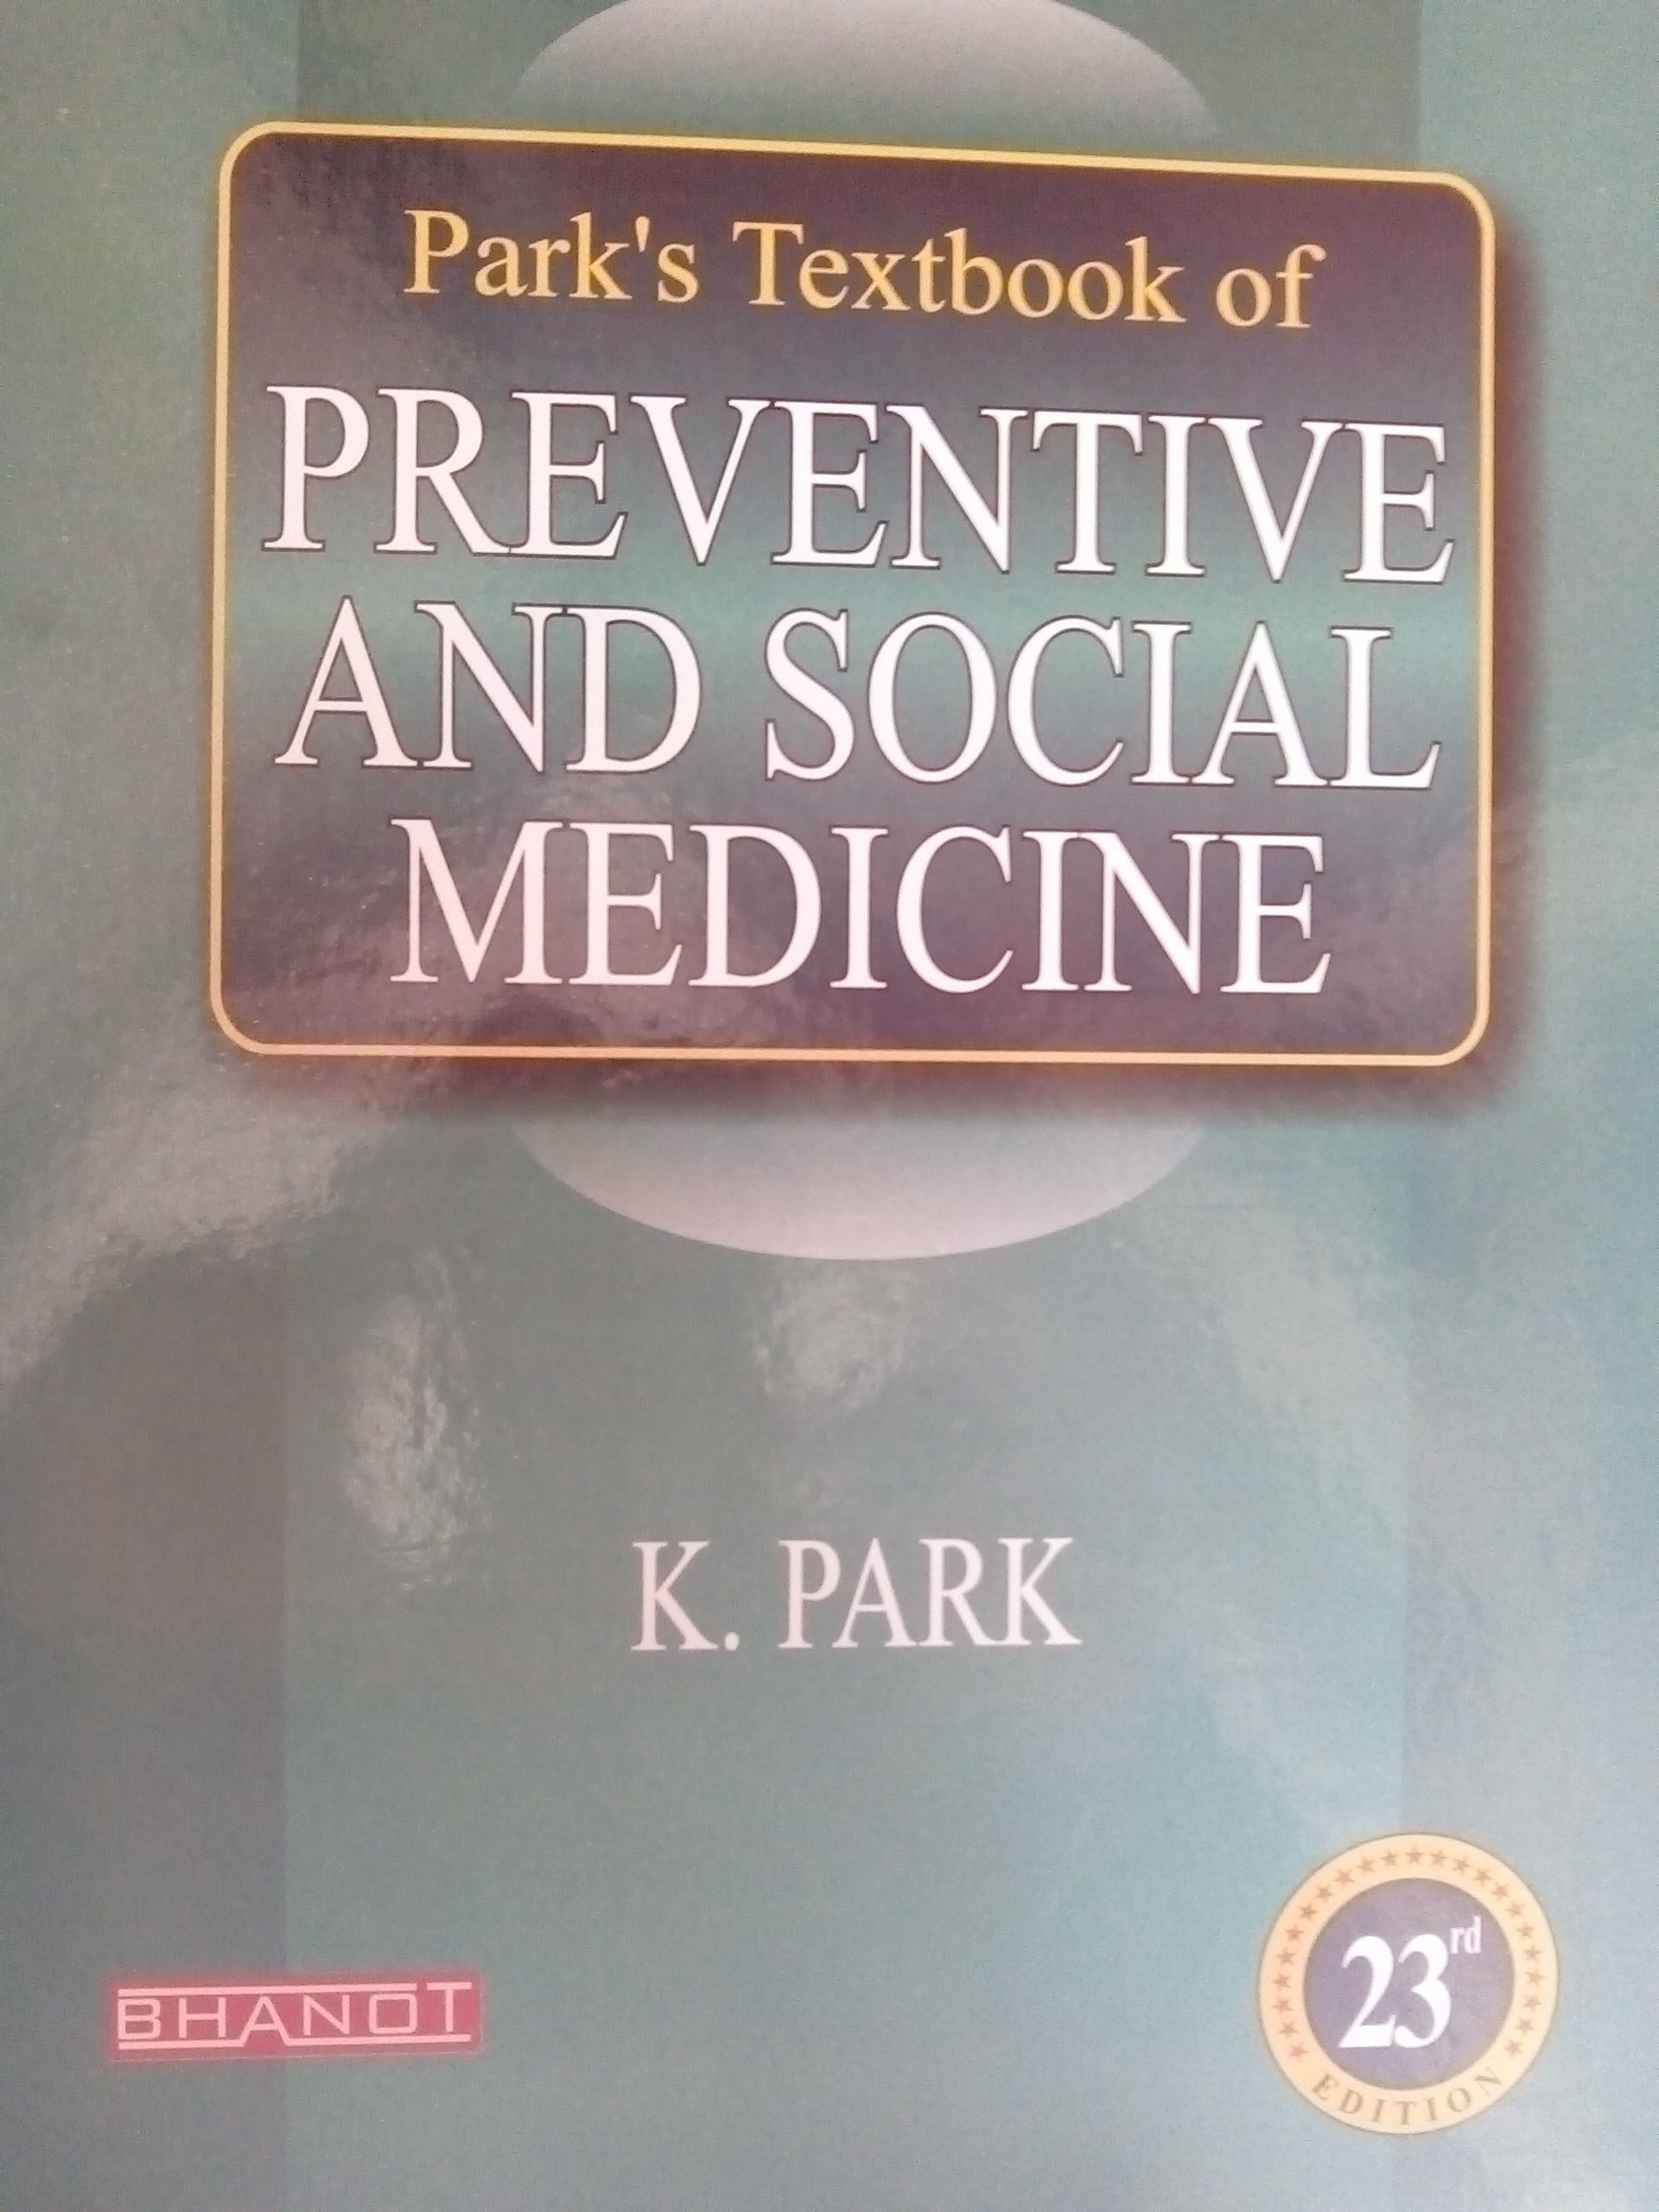 Park's textbook of preventive and social medicine: k. Park.